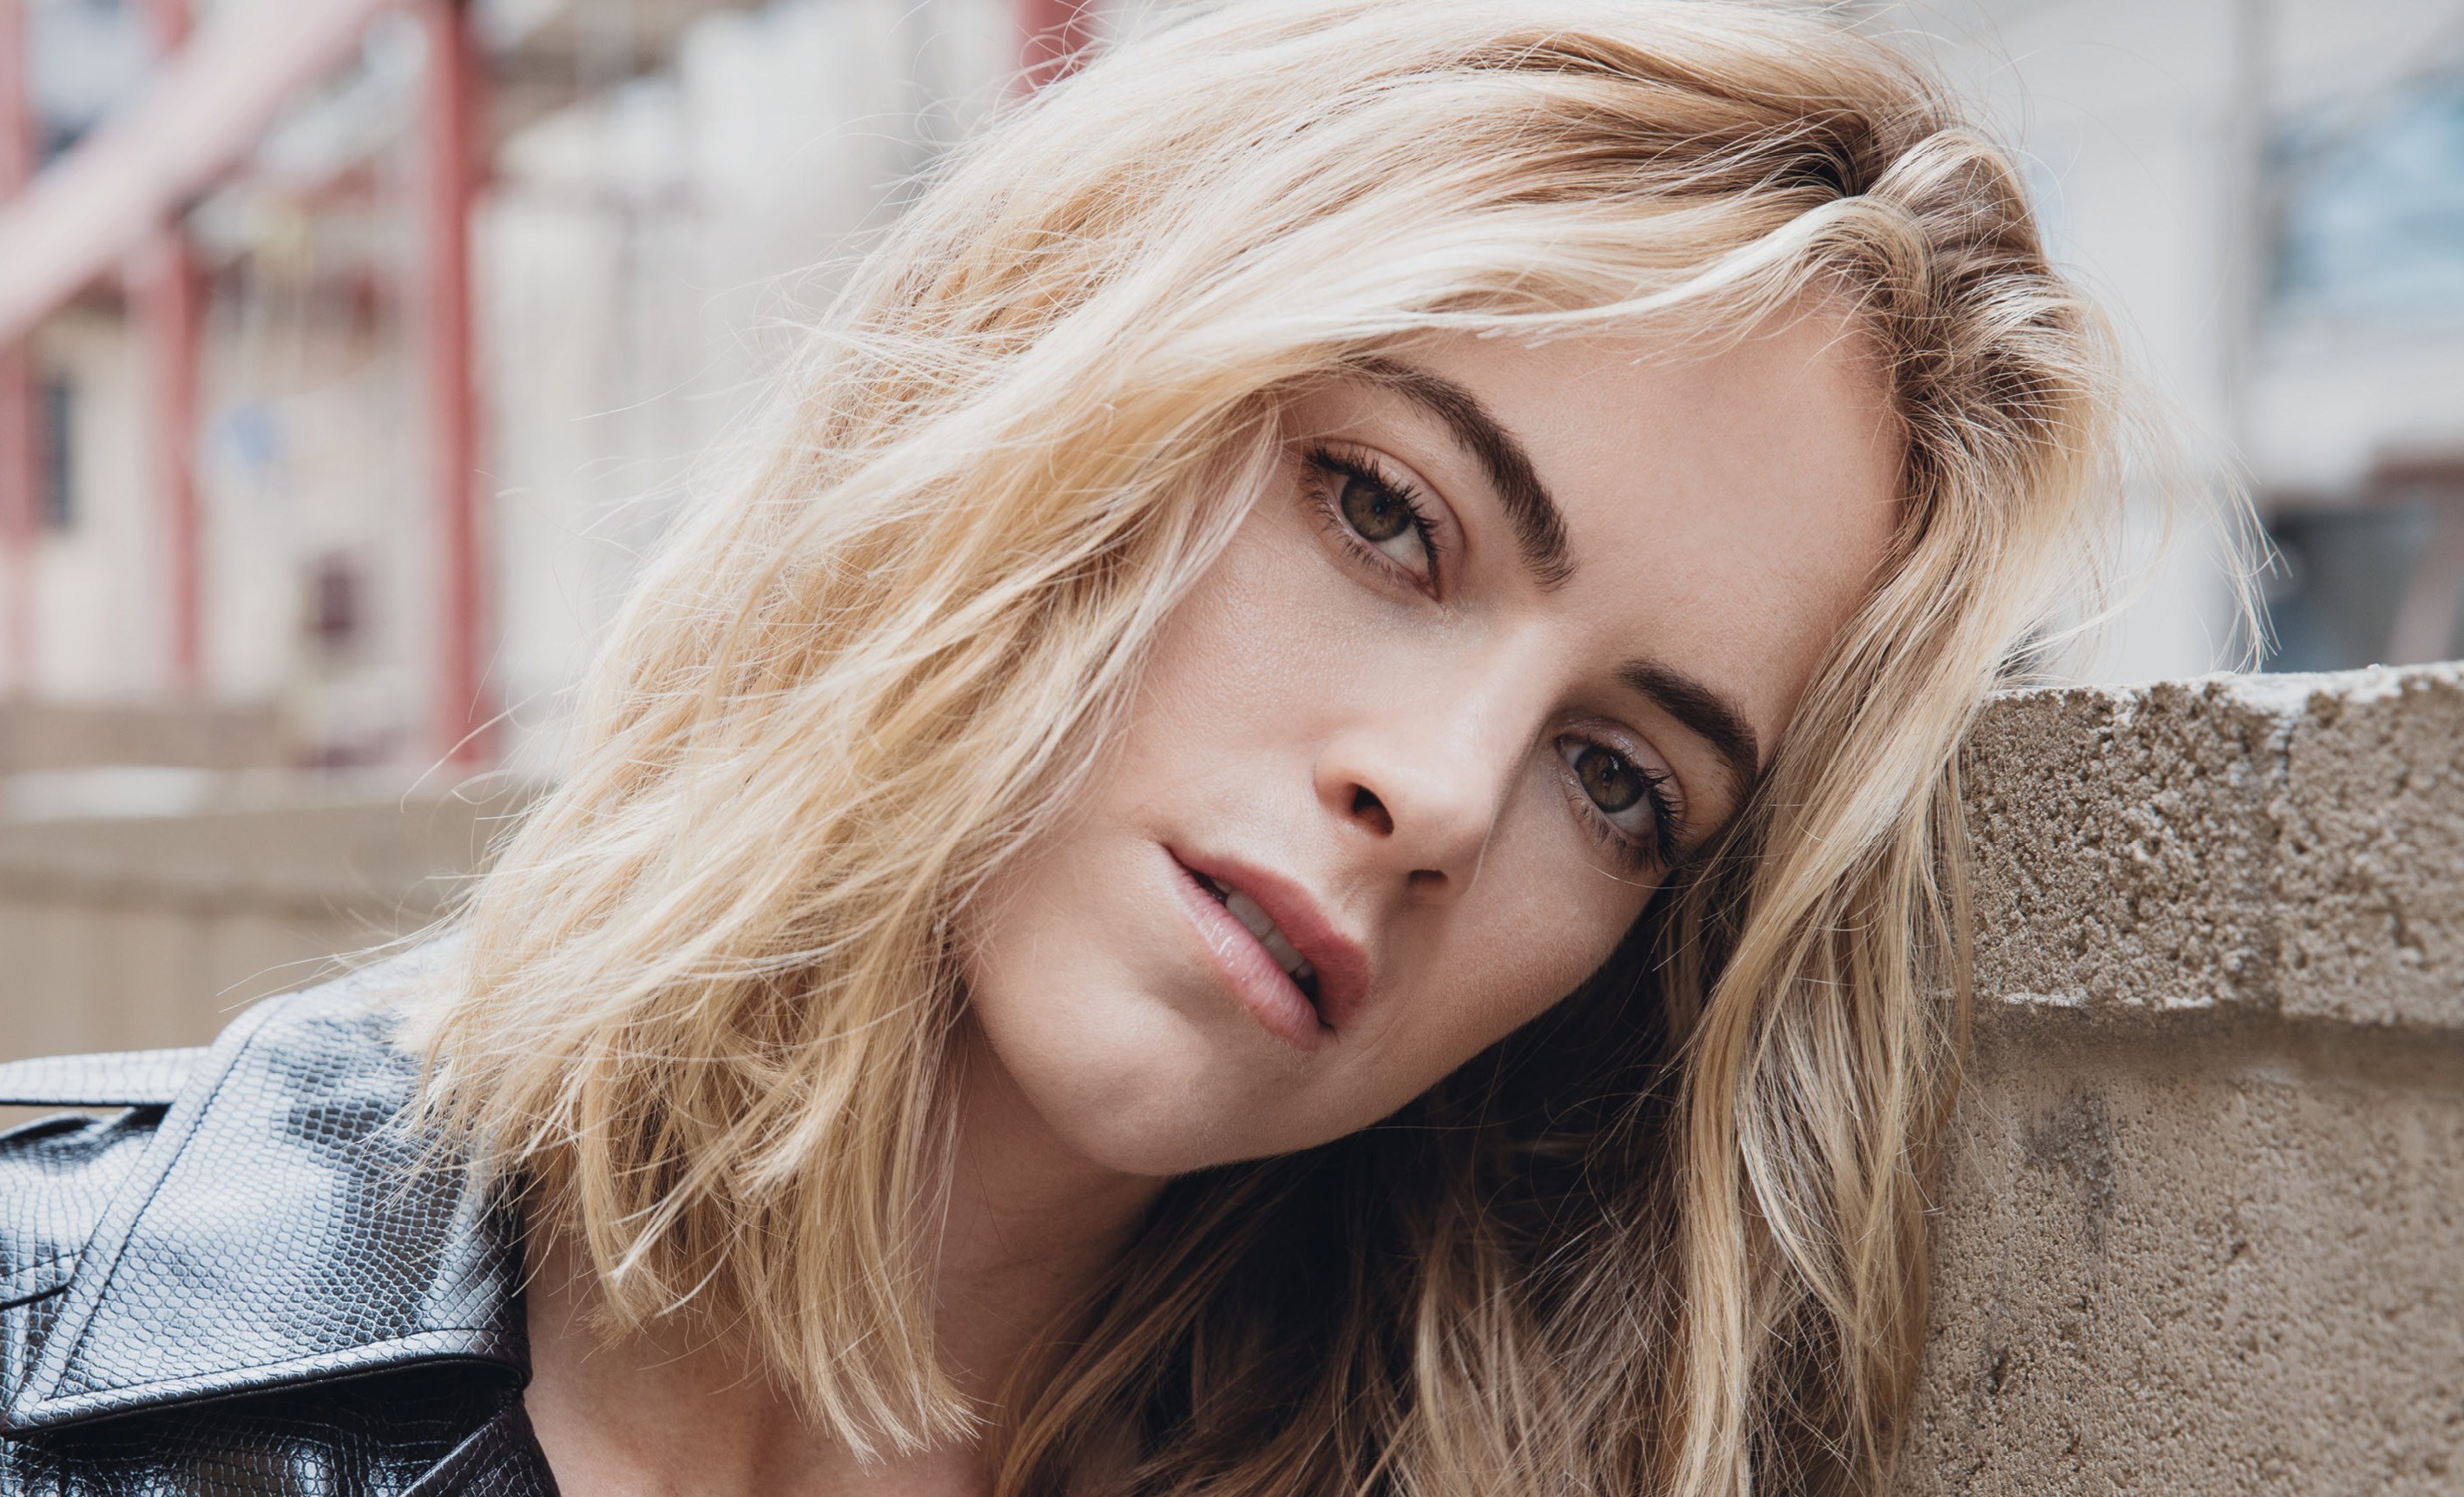 Emily Wickersham Full Hd Wallpaper And Background Image 2838x1724 Id 782524